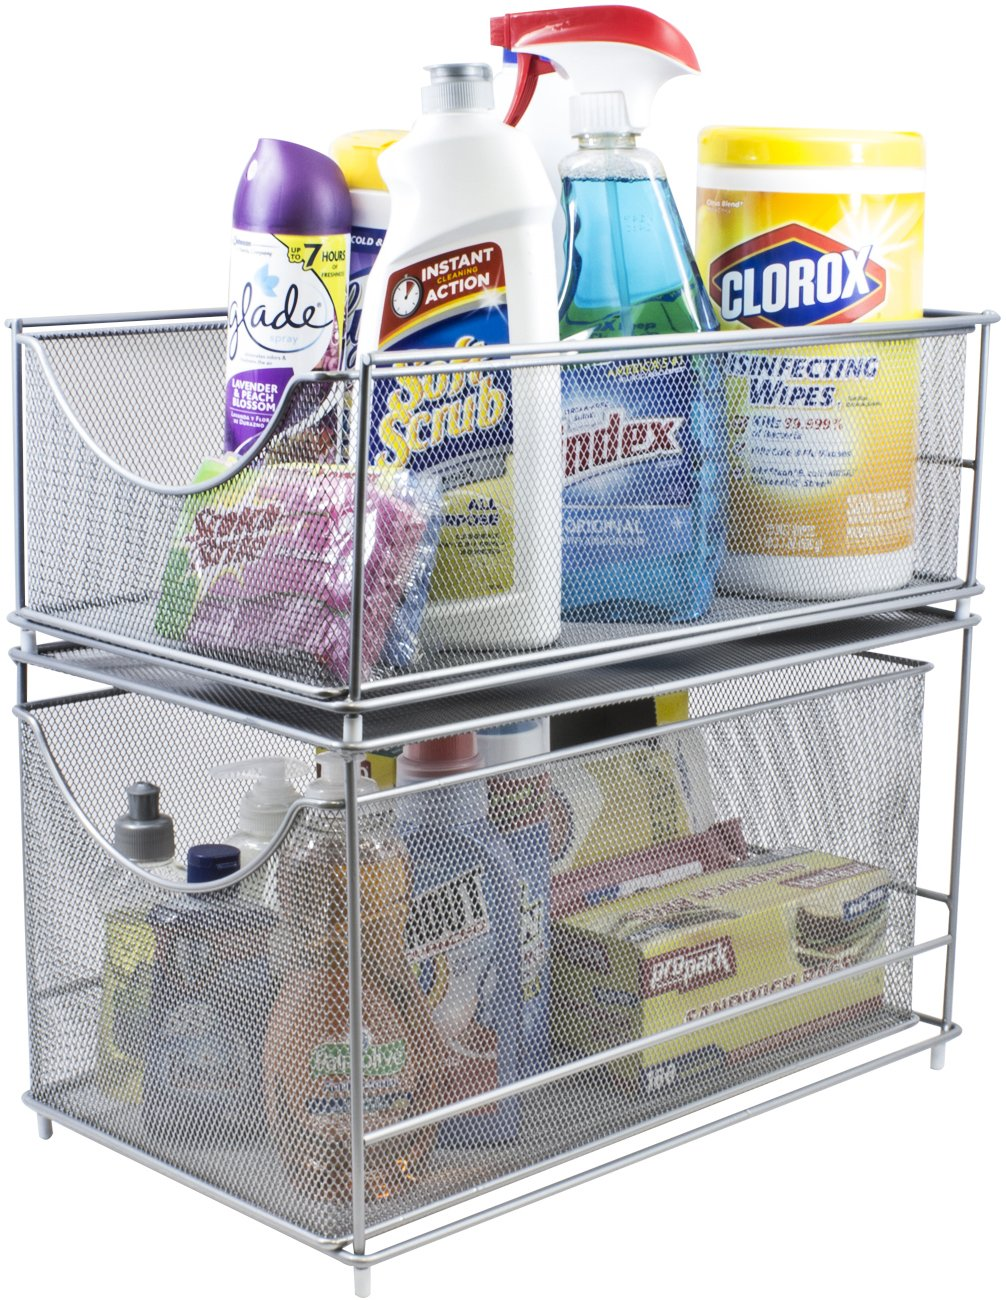 Sorbus Cabinet Organizer Set —Mesh Storage Organizer with Pull Out Drawers—Ideal for Countertop, Cabinet, Pantry, Under the Sink, Desktop and More (Silver Two-Piece Set)